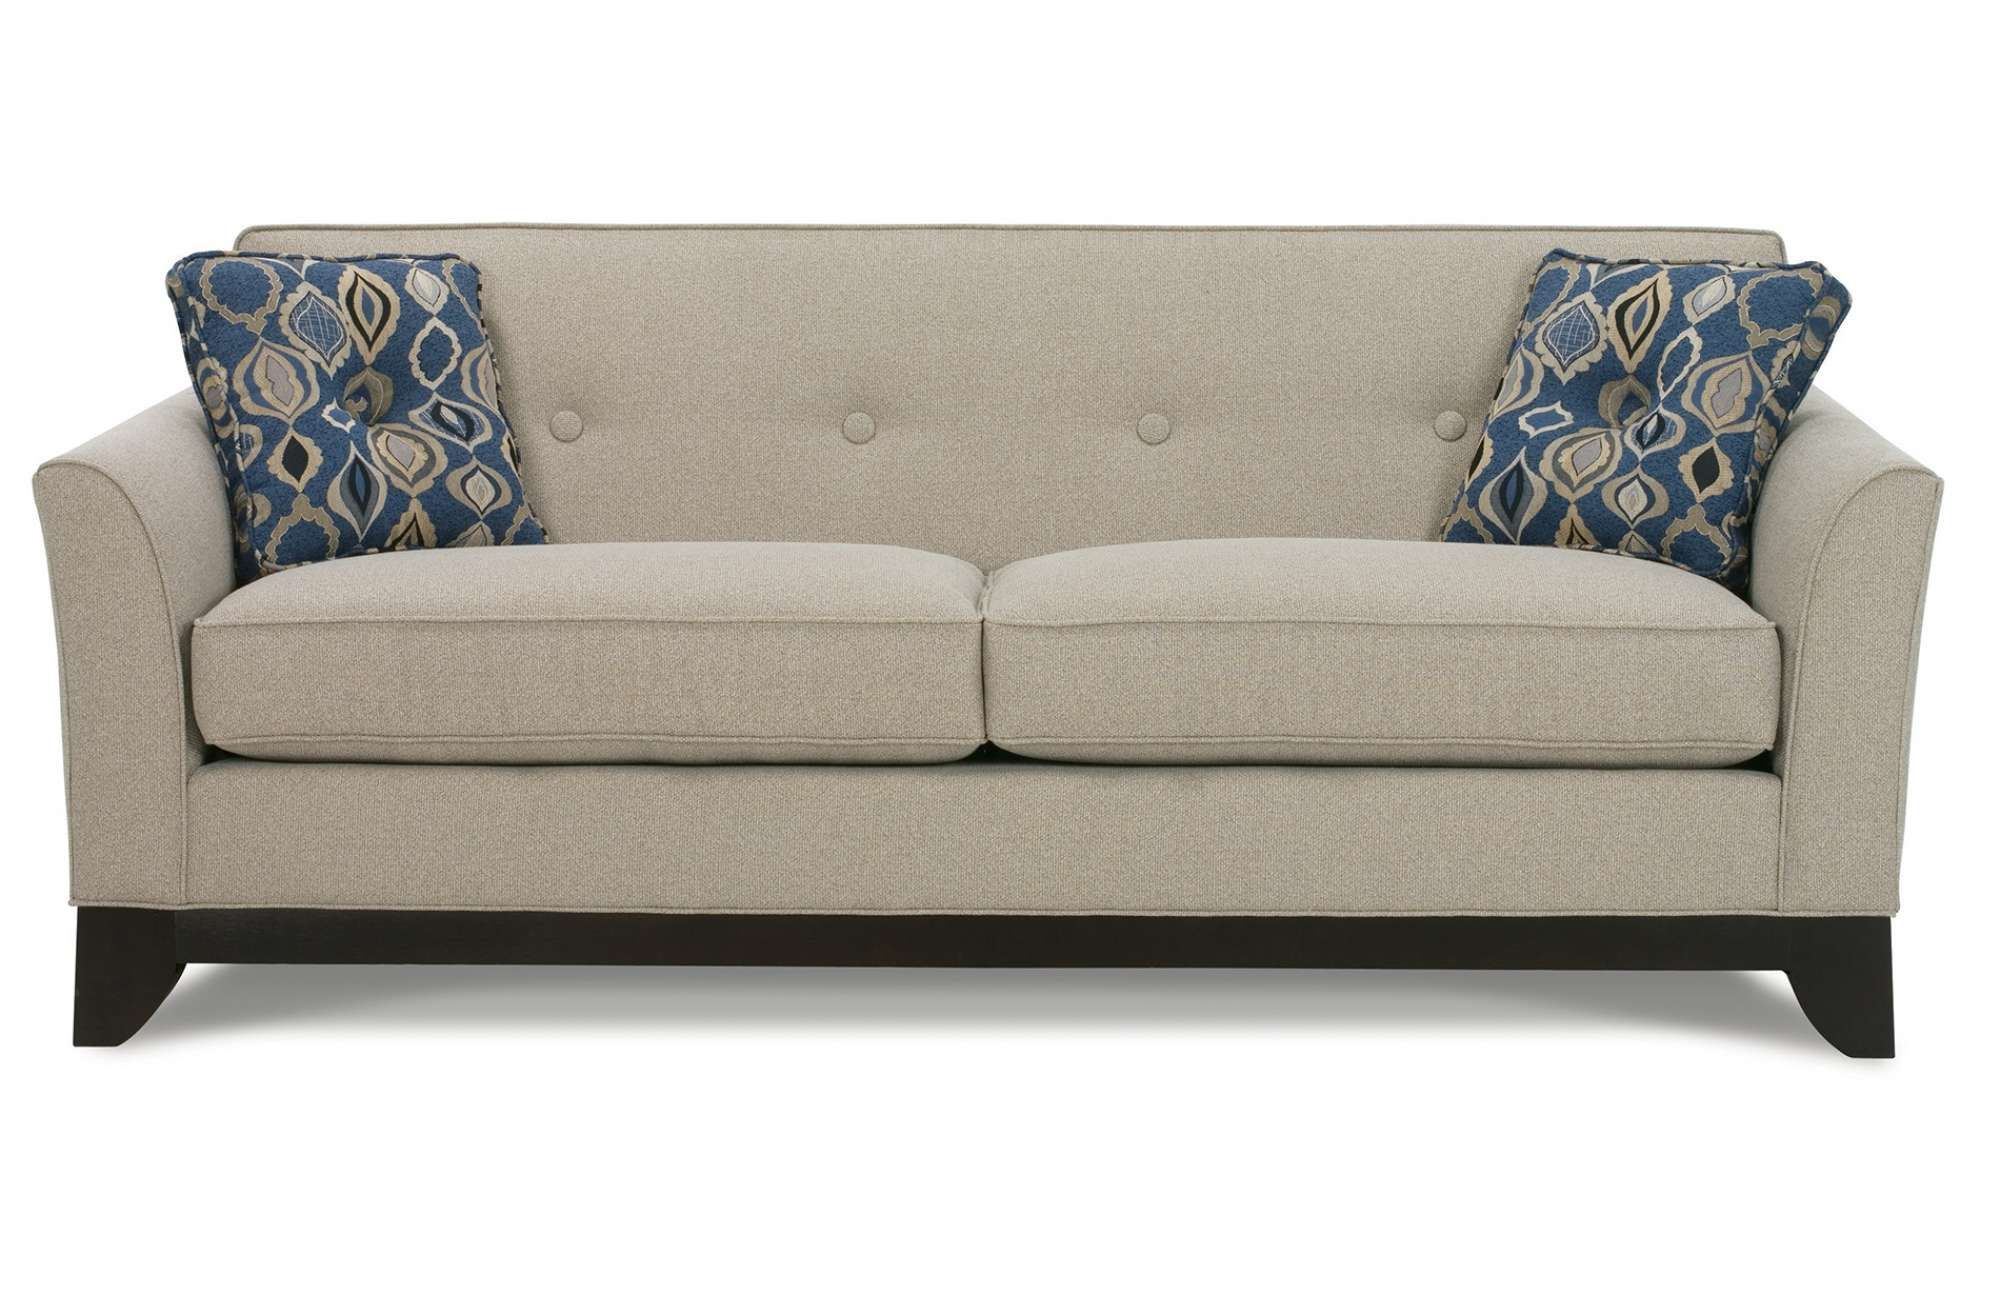 The Berkeley Sofa Is Equally Stylish And Comfortable With It S Contemporary Design Modern